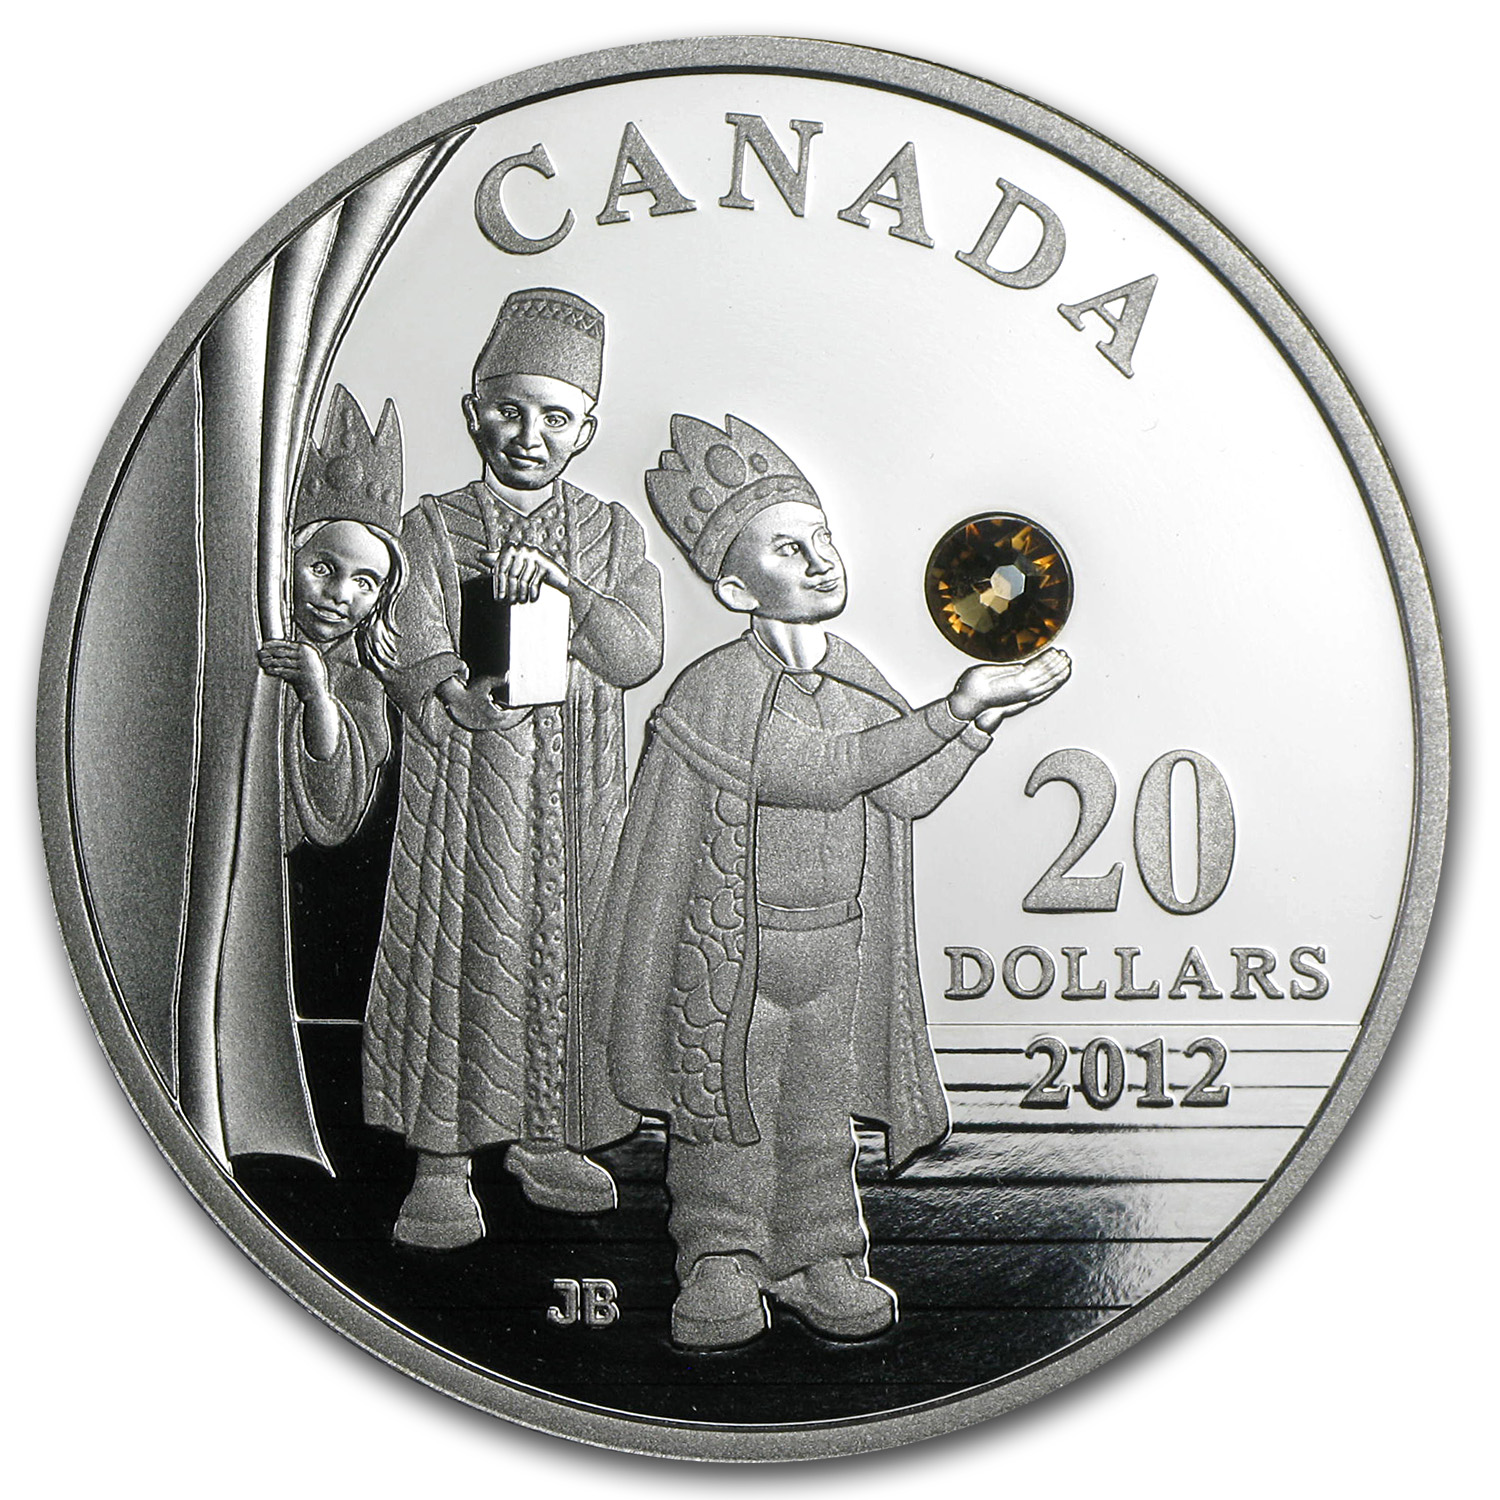 2012 Silver Canadian $20 Holiday Coin - Three Wise Men W/ Crystal